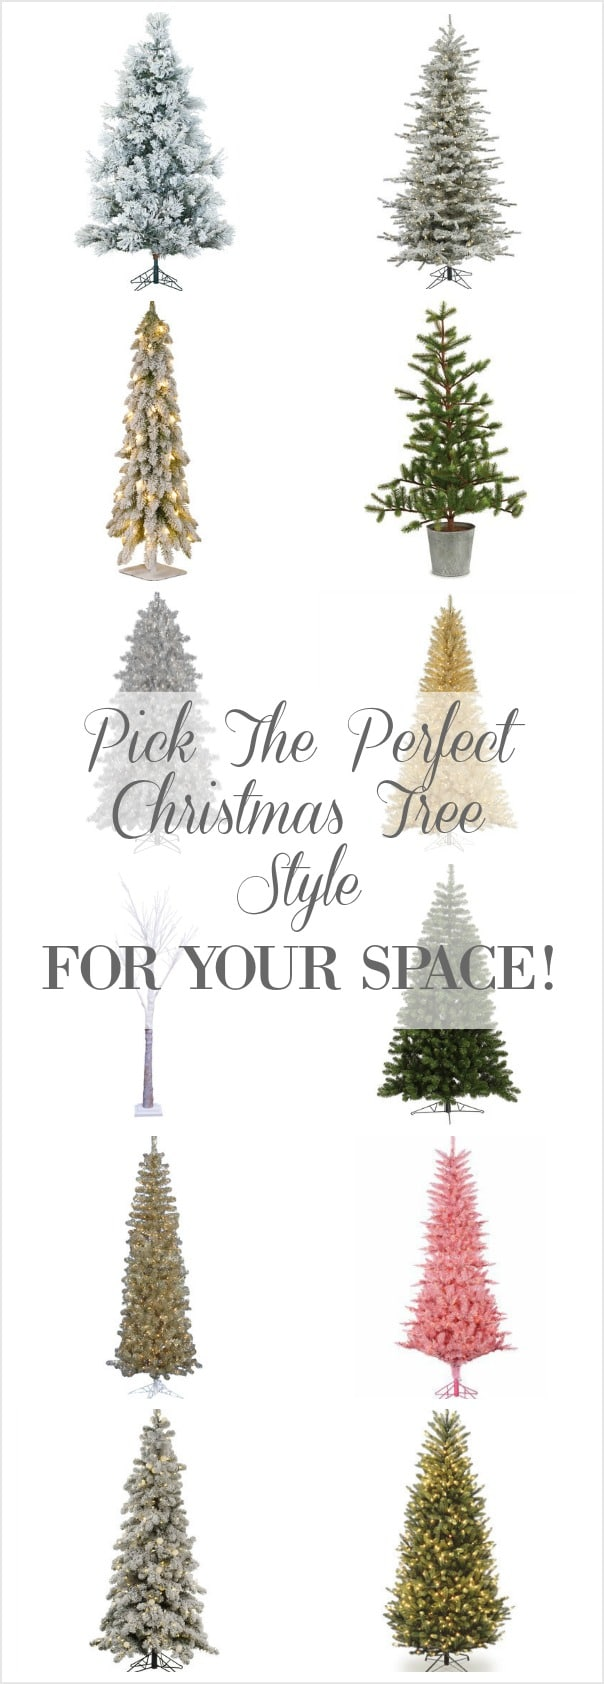 Pick the perfect Christmas tree for your space! See 14 beautiful Christmas trees that will fit corners, low ceilings, tall ceilings, small spaces, flocked, colored, tinsel trees and more! See lighted birch trees and table top trees too! You'll find the perfect tree to celebrate the holidays right here!